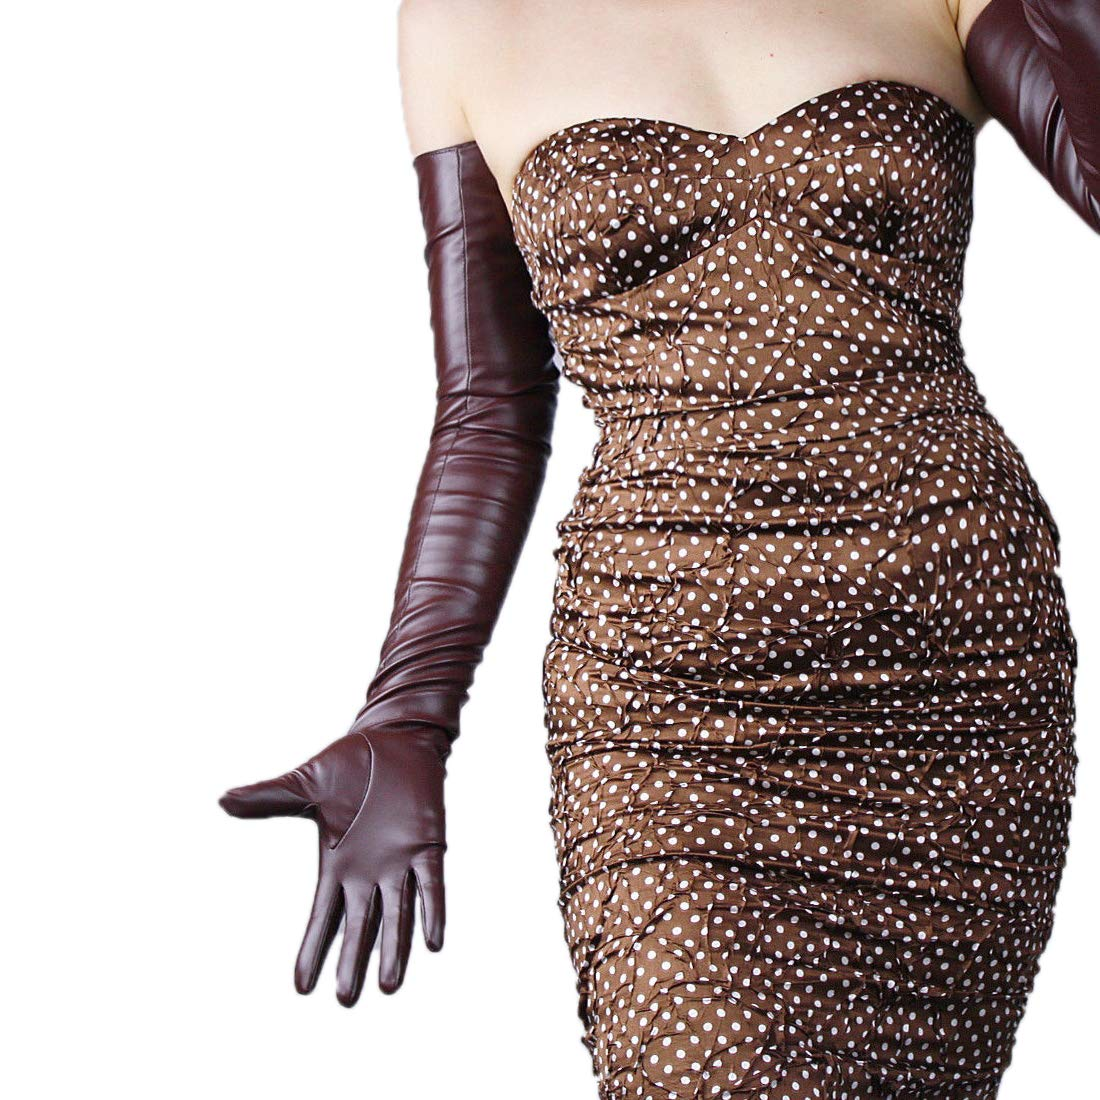 SUEDE LONG GLOVES Faux Leather PU 28 70cm Extra Long Evening (Black touch screen)